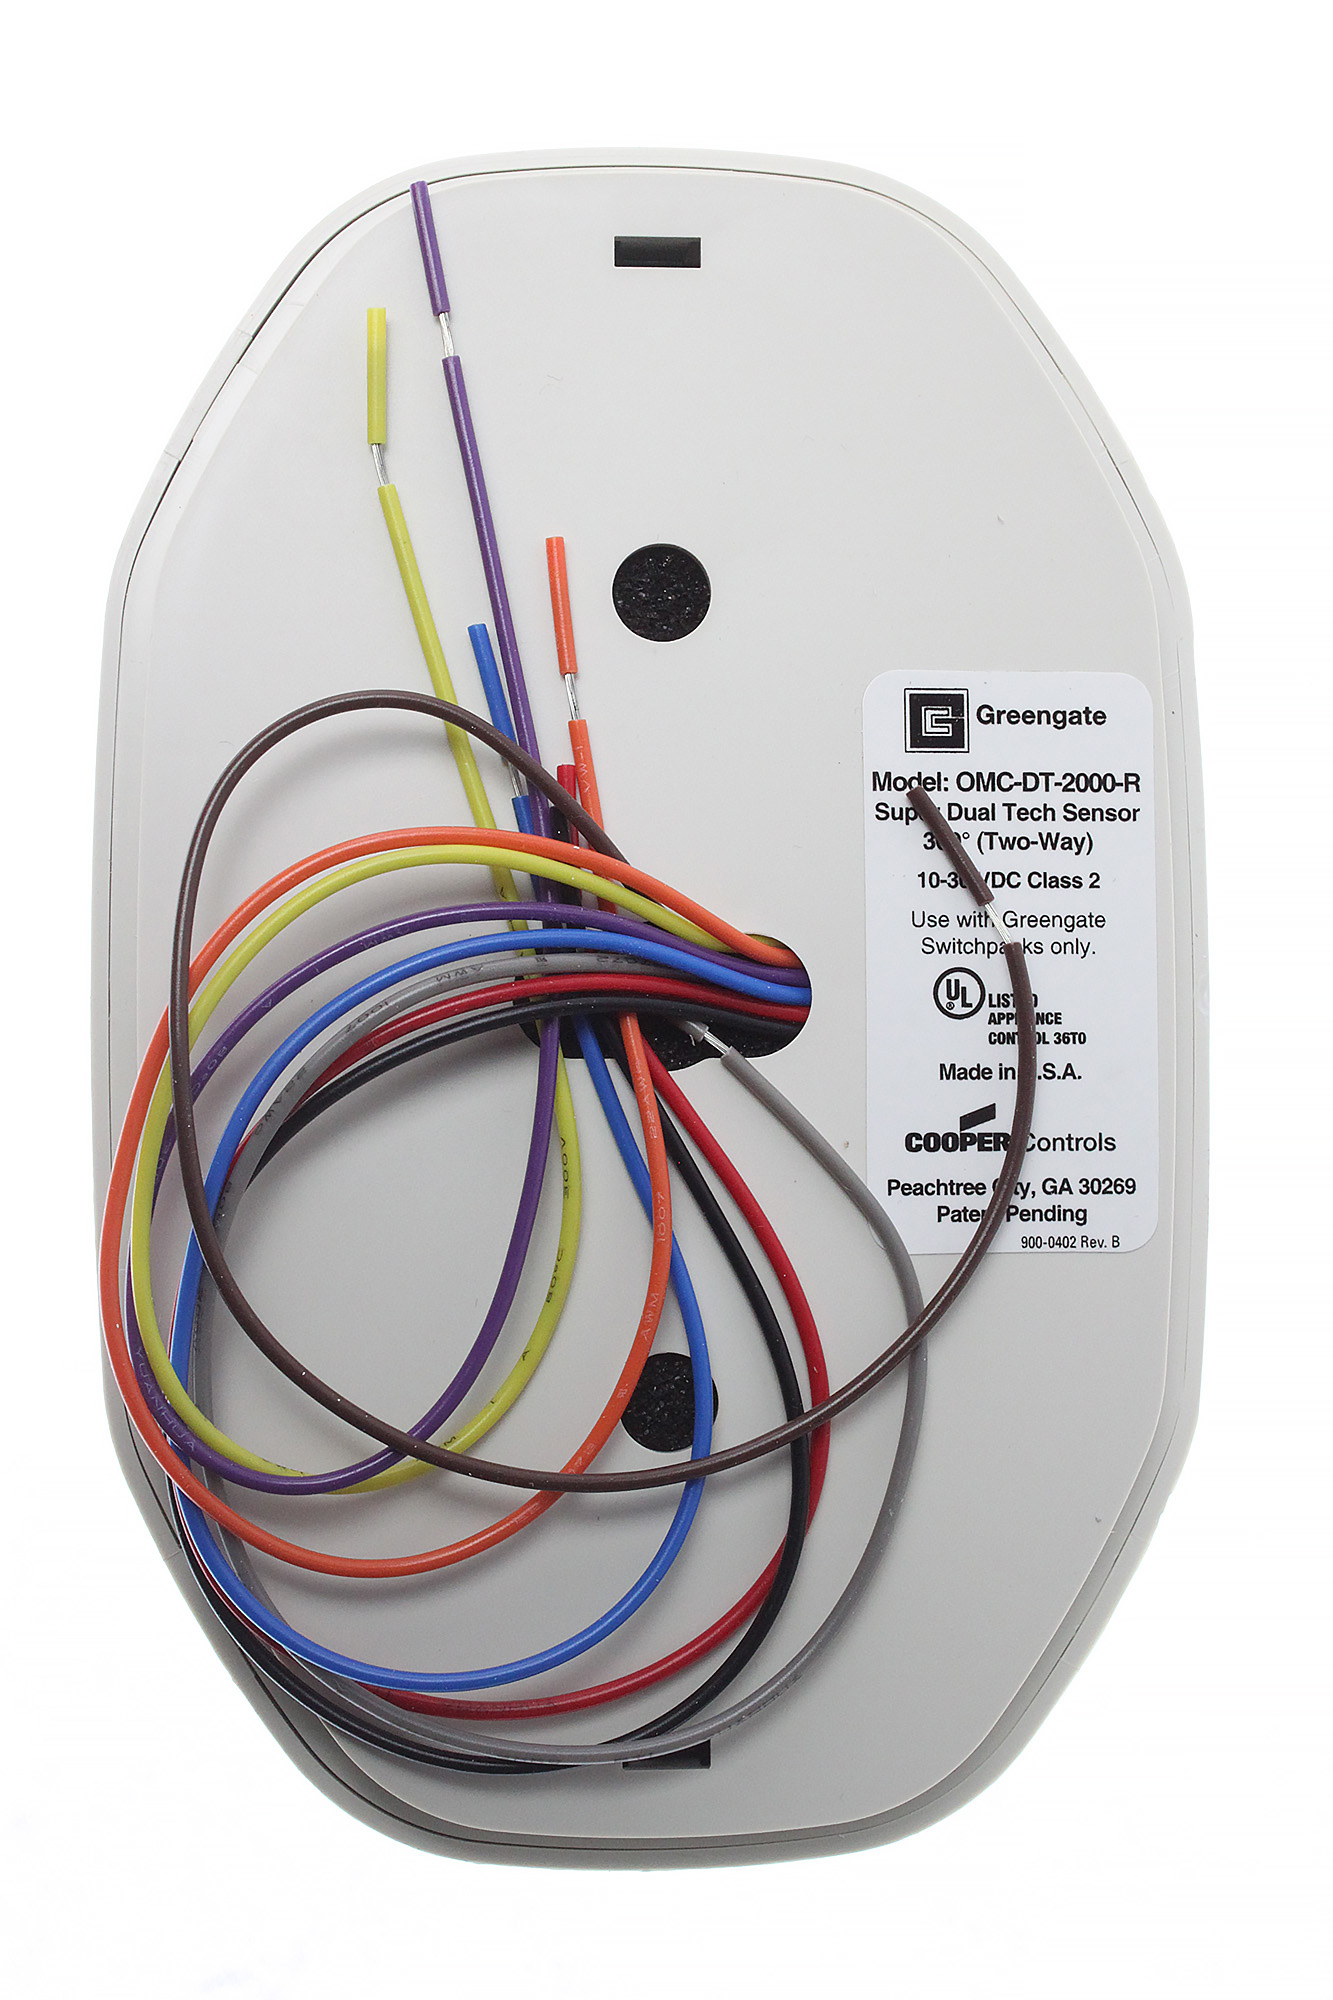 Greengate omc dt 2000 r dual tech ceiling occupancy sensor wrelay greengate omc dt 2000 r dual tech ceiling sciox Image collections